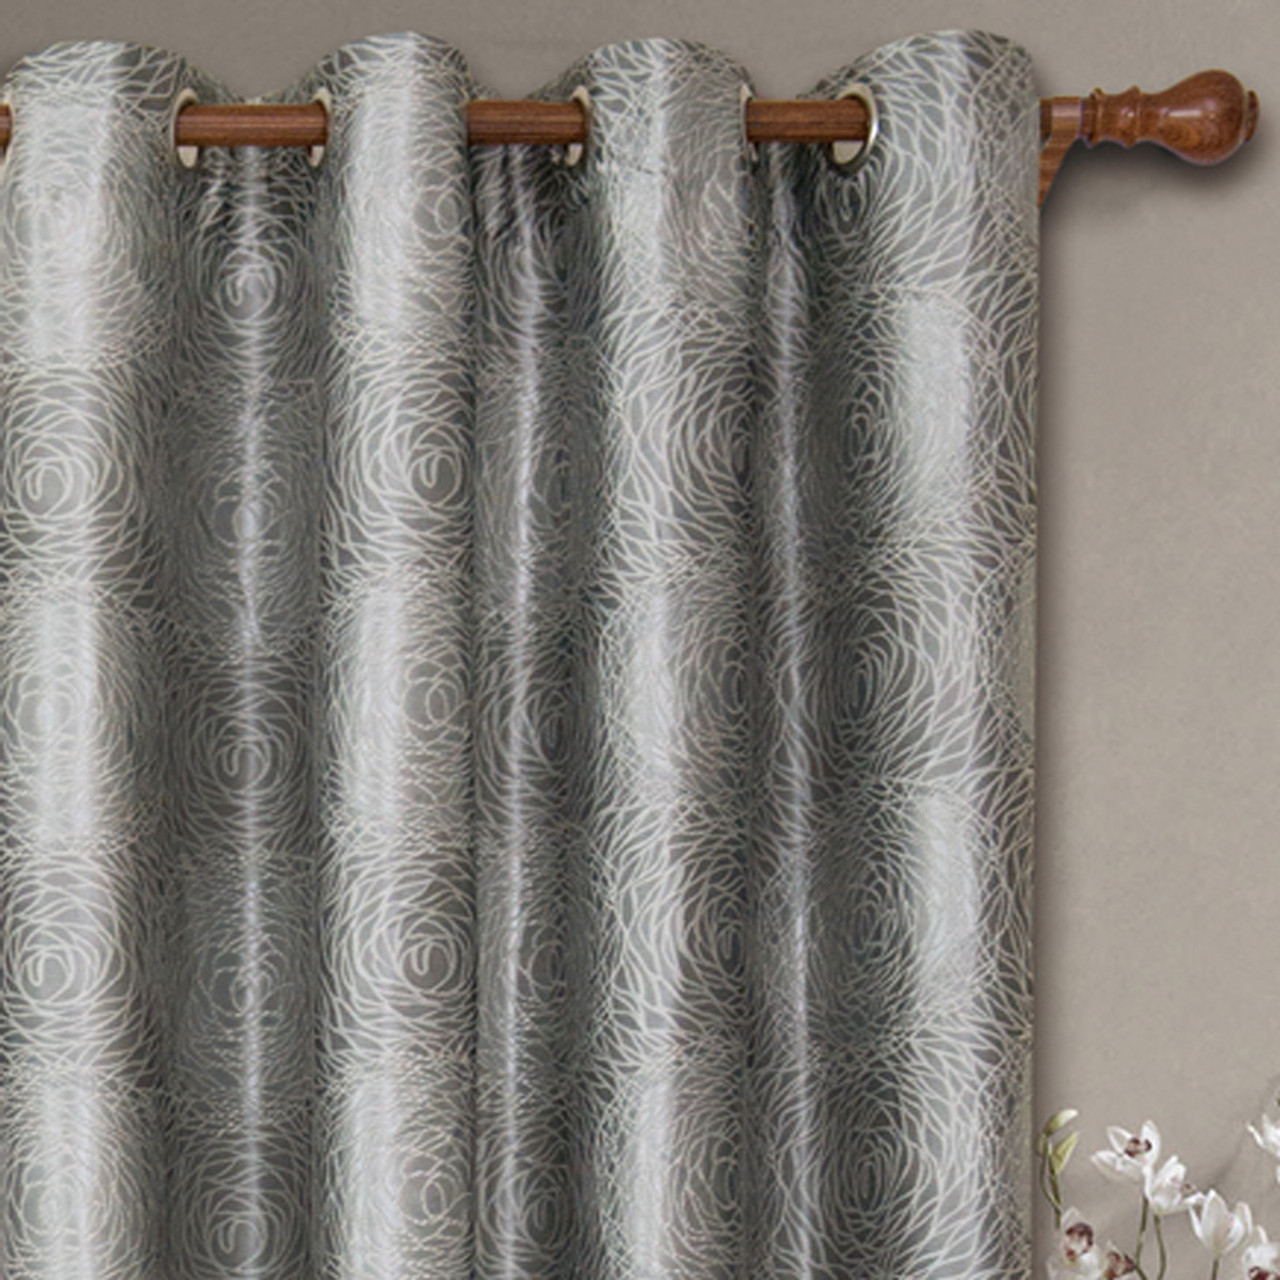 104 Inch Curtains Lexington Circle Swirl Jacquard Curtains Top Grommet Panels Set Of 2